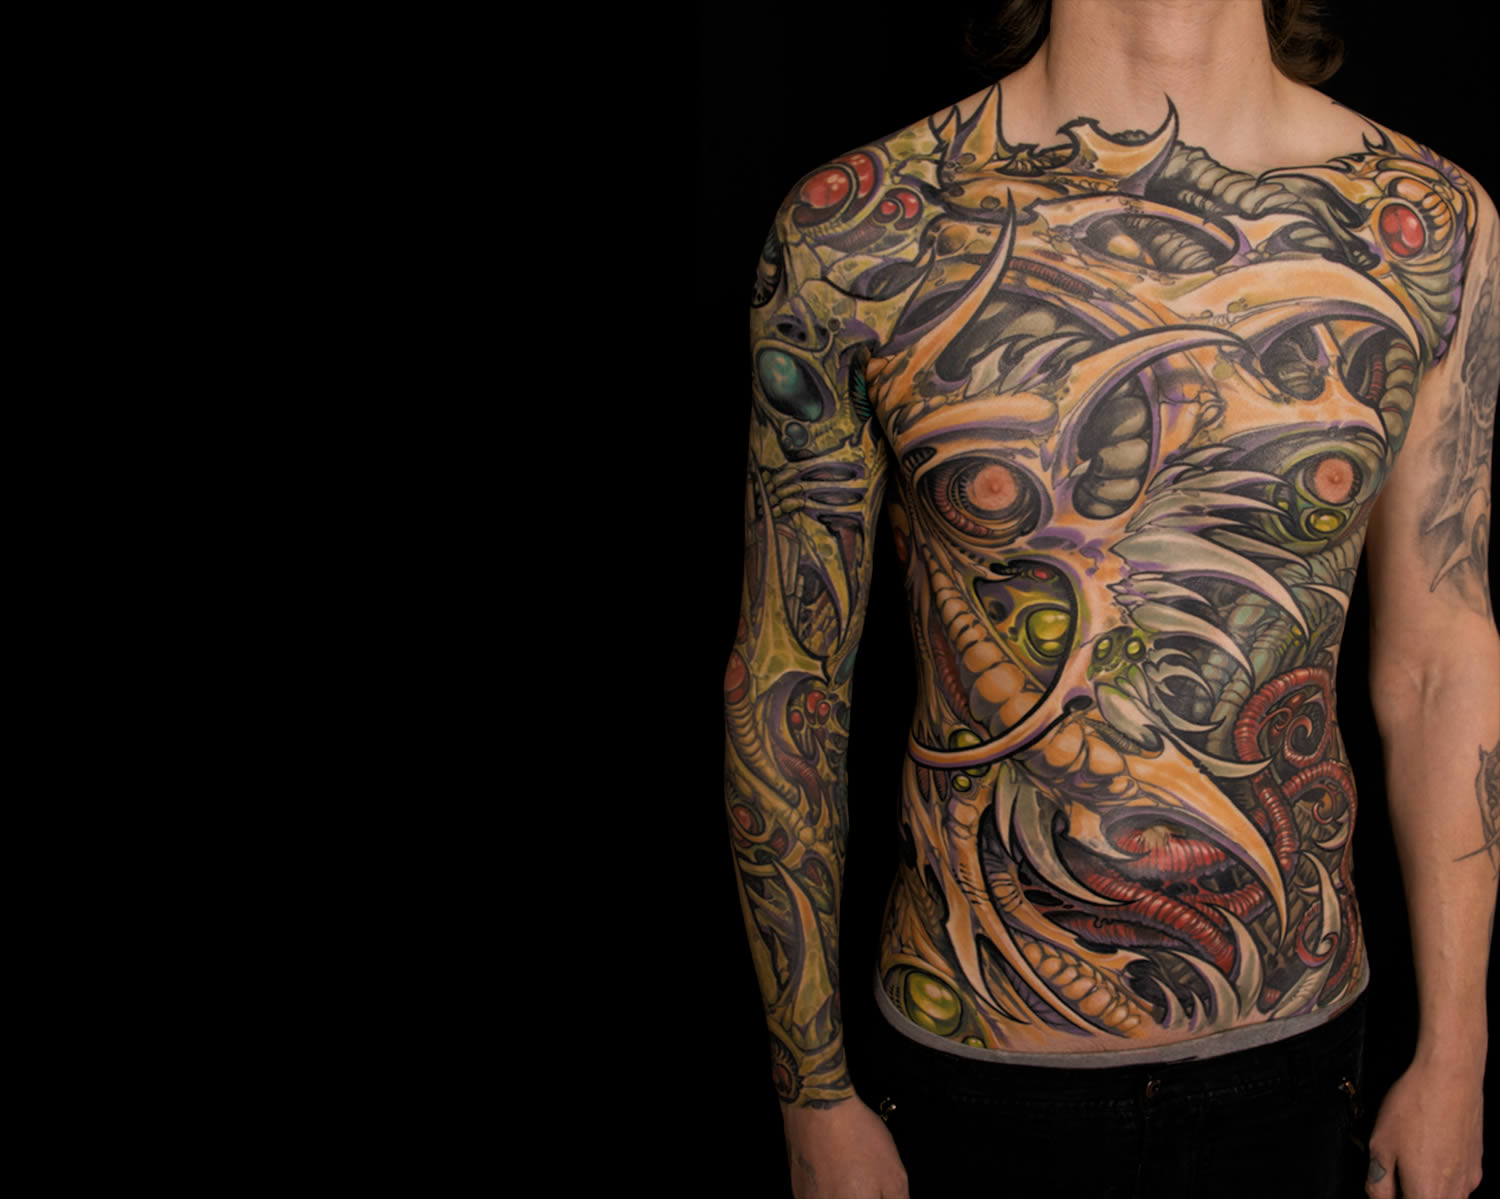 Mind Blowing Biomechanical Tattoos